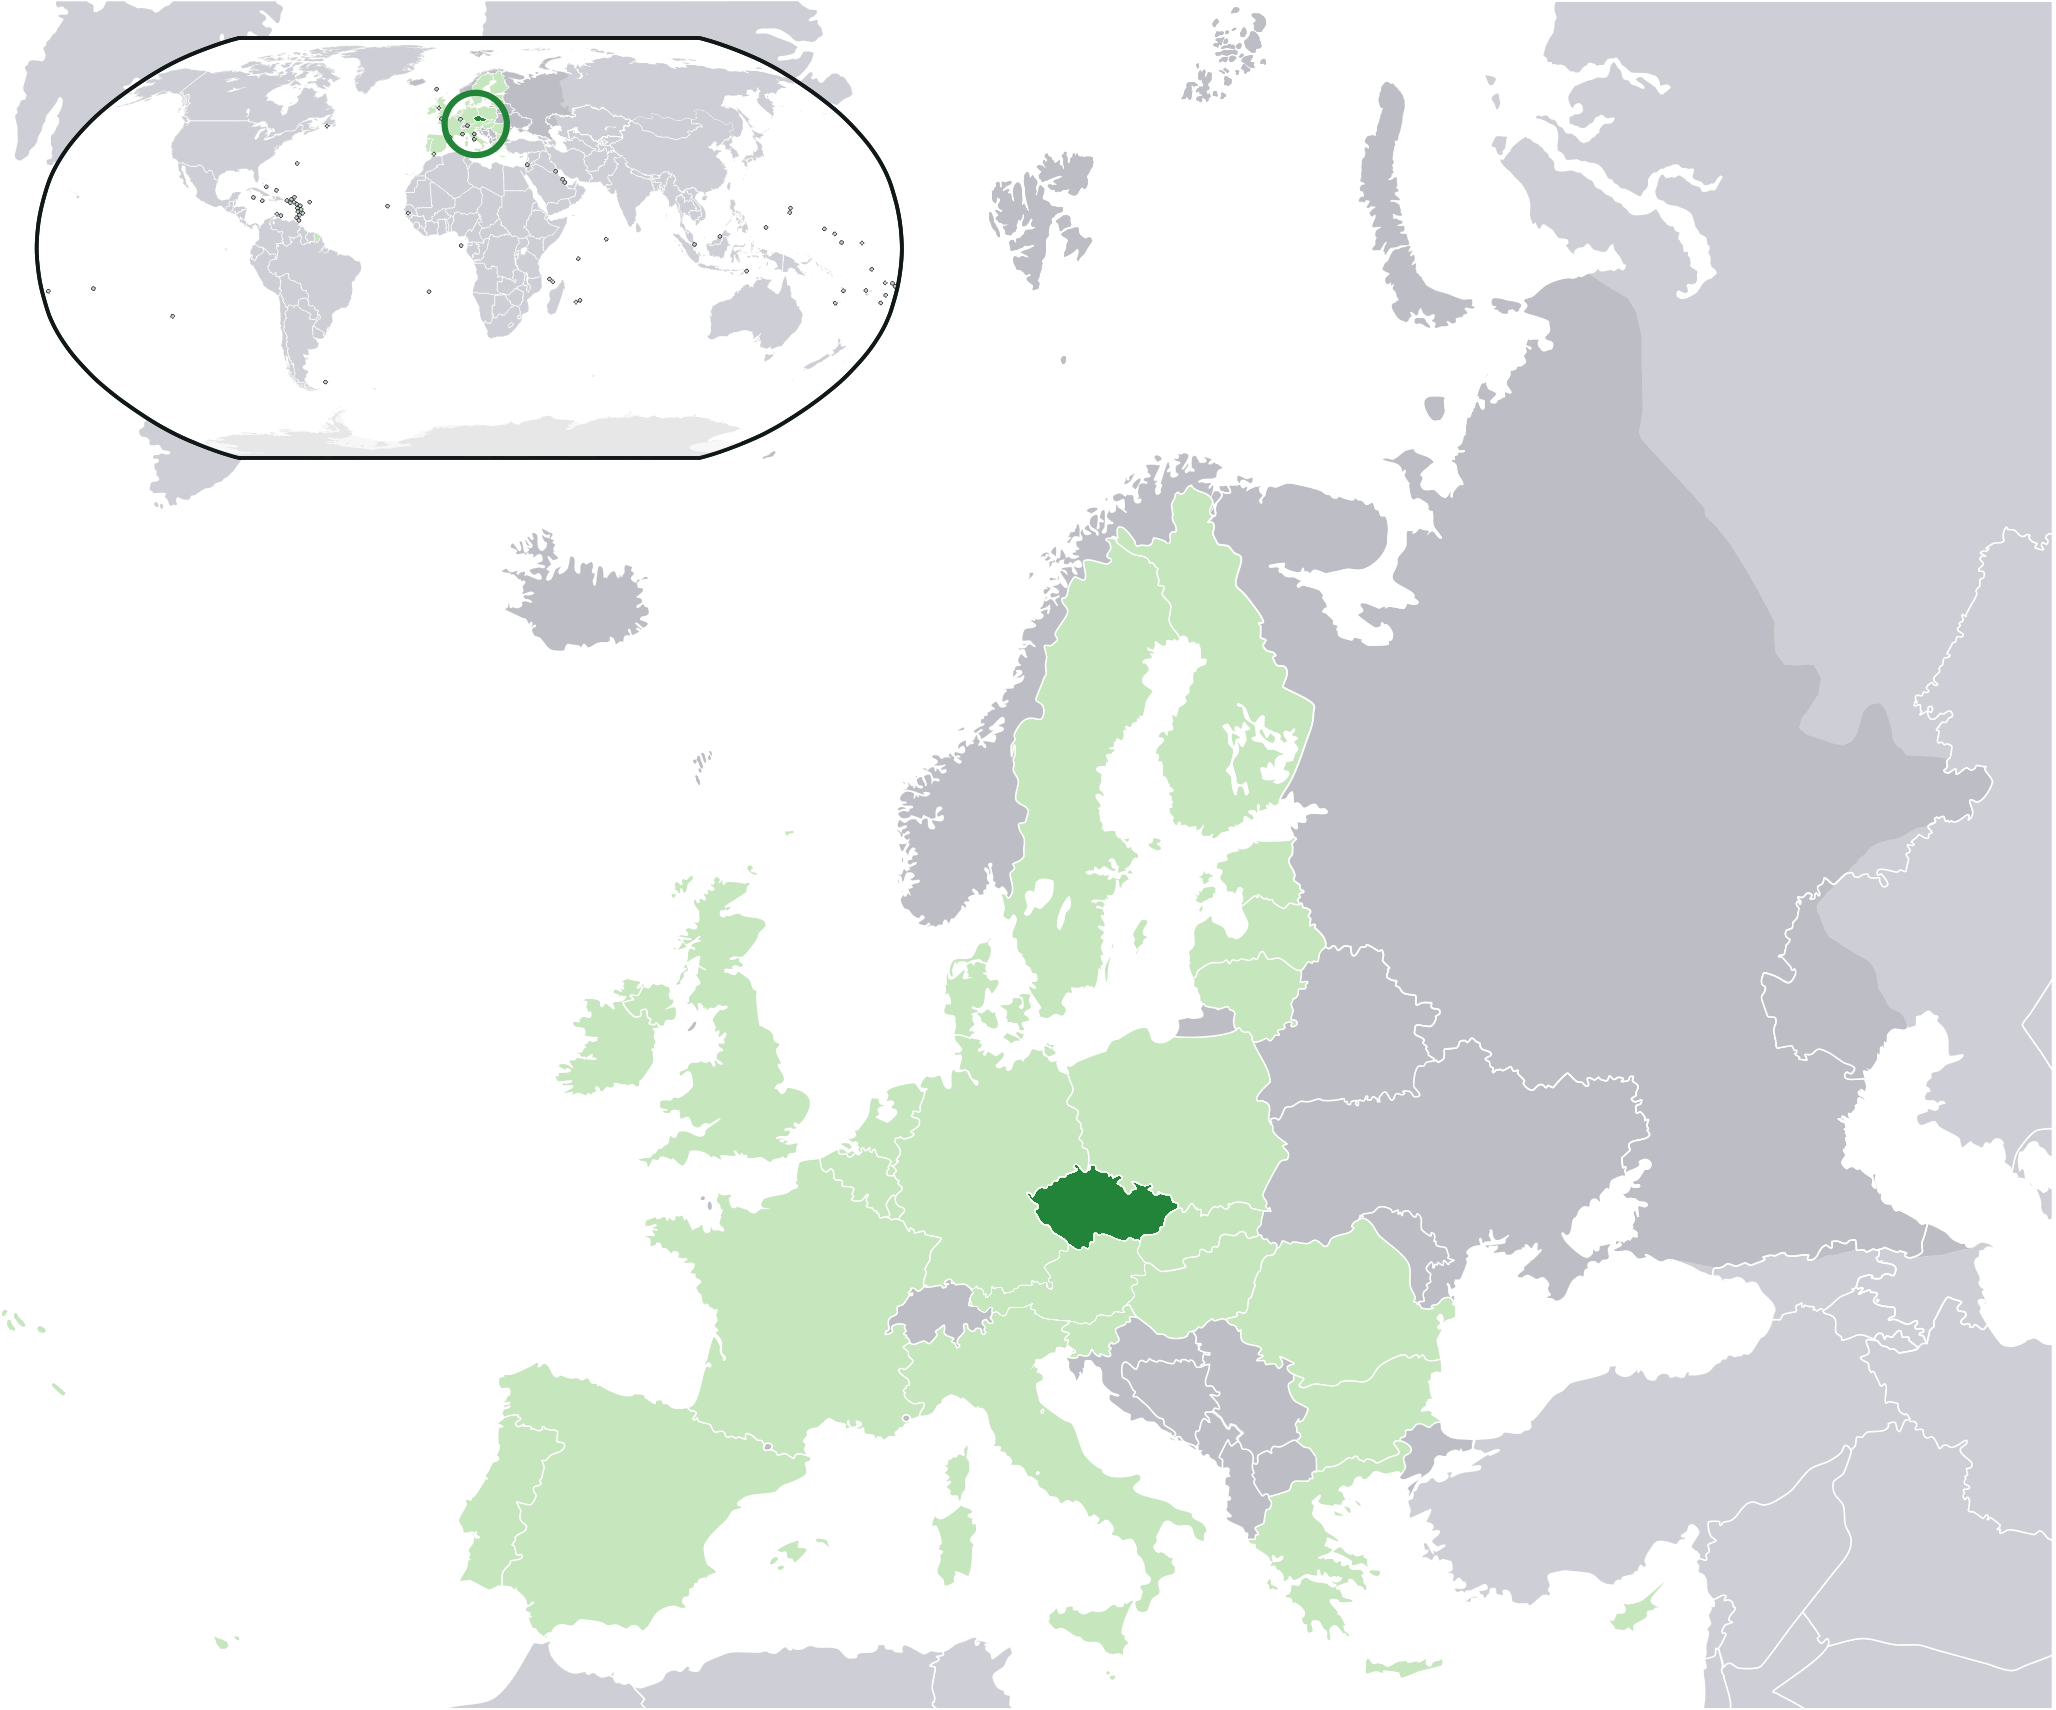 FileLocation Czech Republic EU Europepng Wikimedia Commons